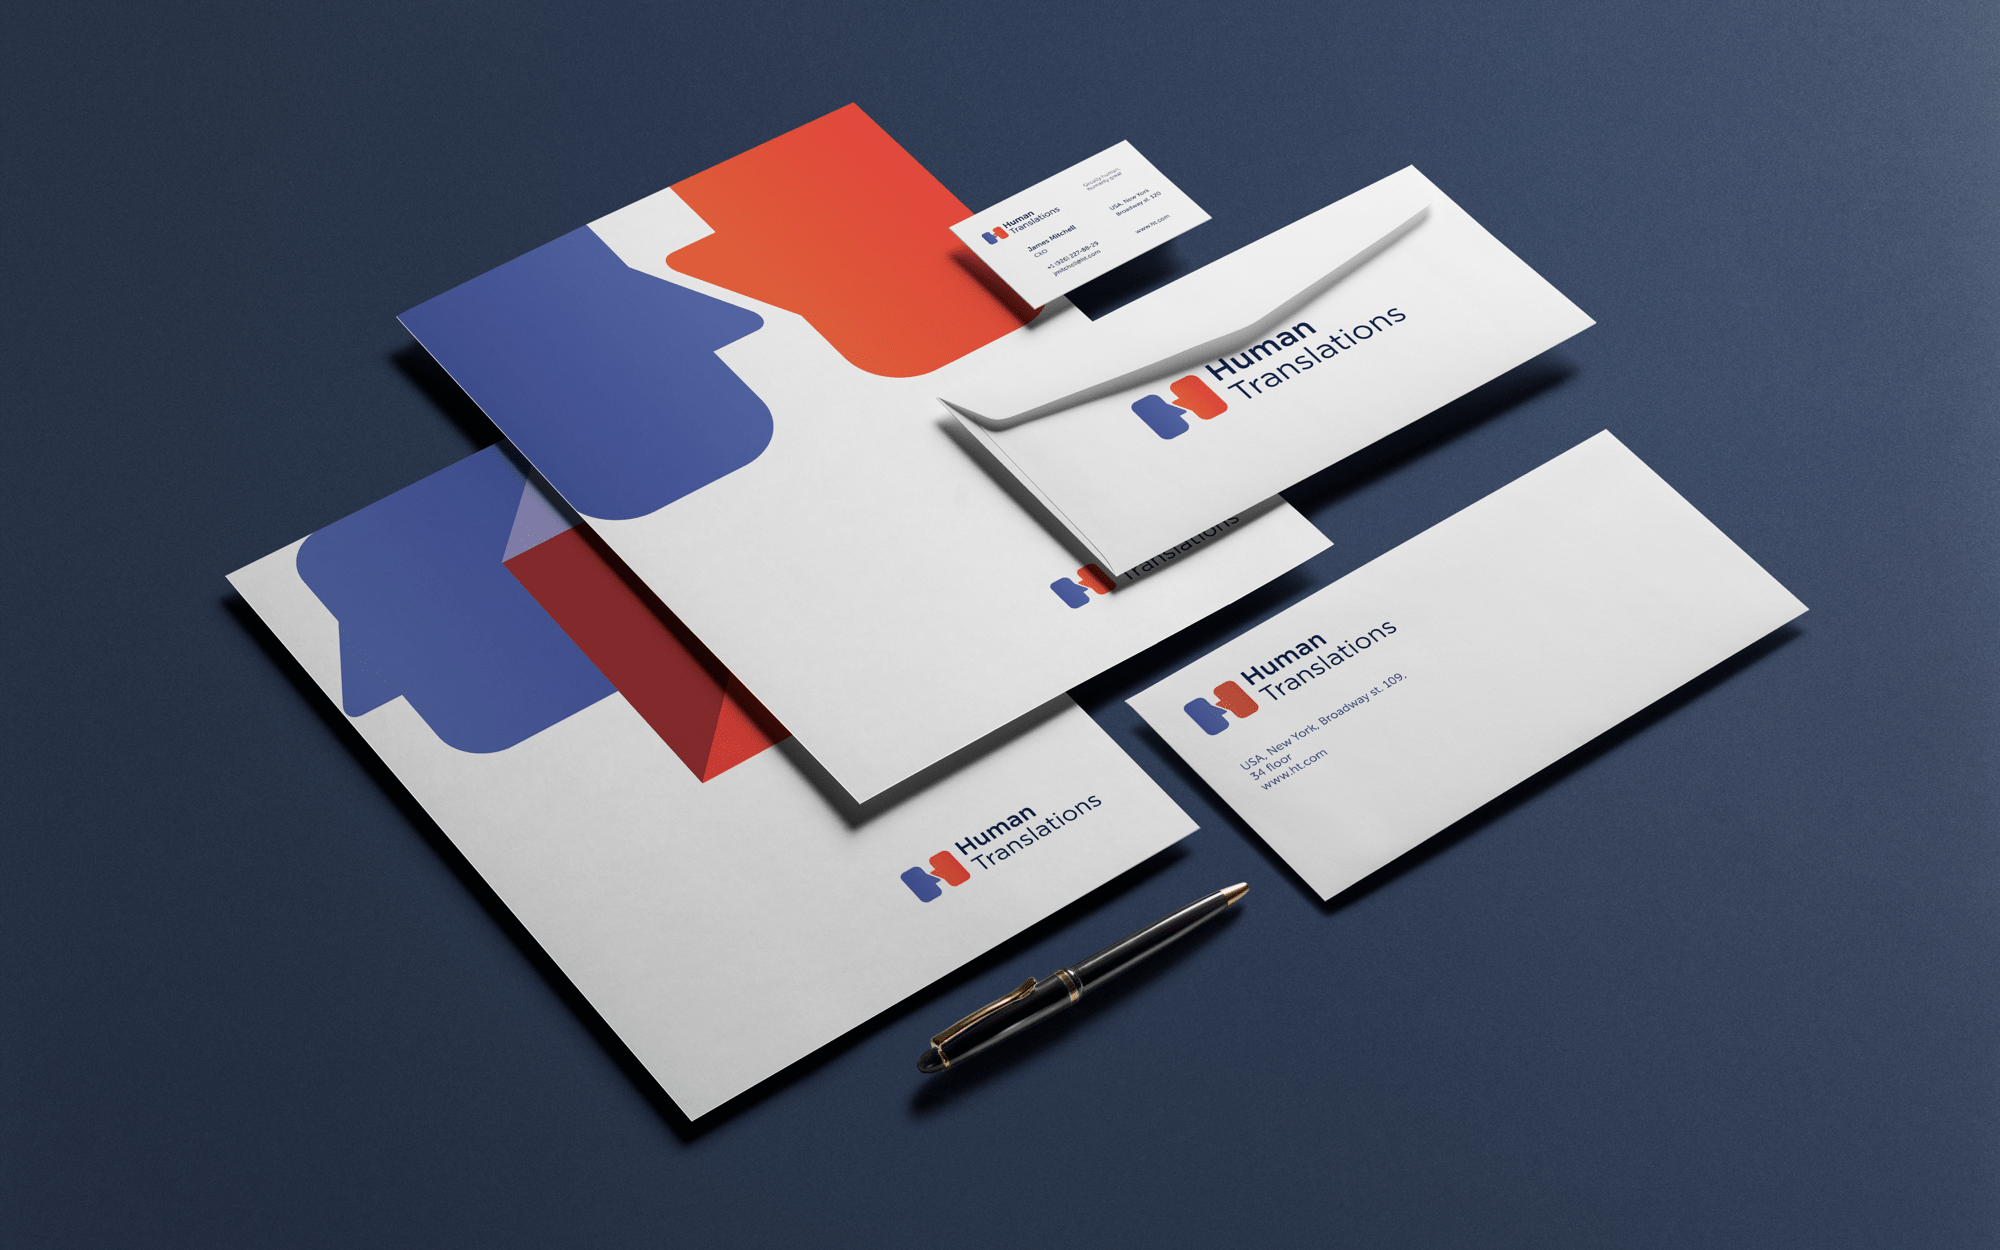 Cprporate identity for translations agency